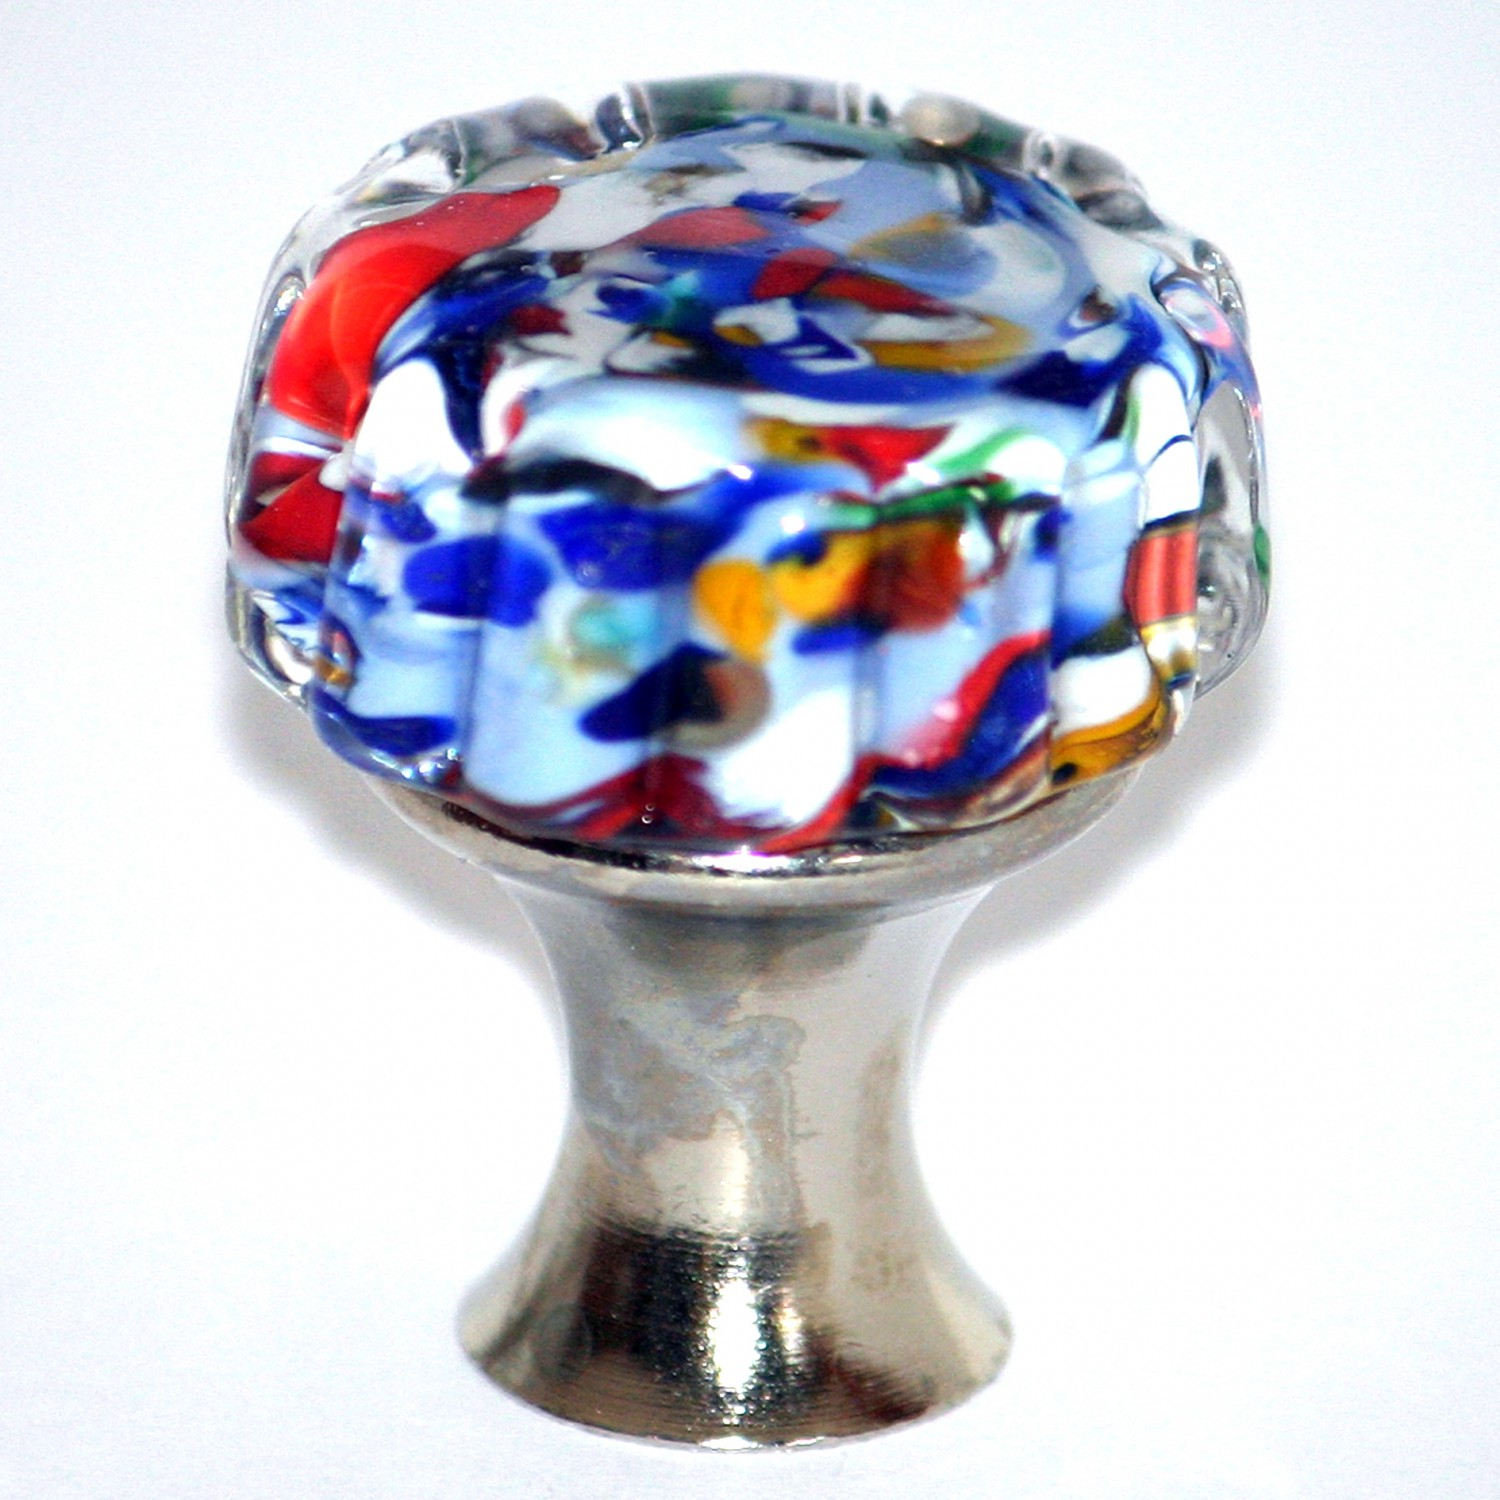 murano glass door knobs photo - 17